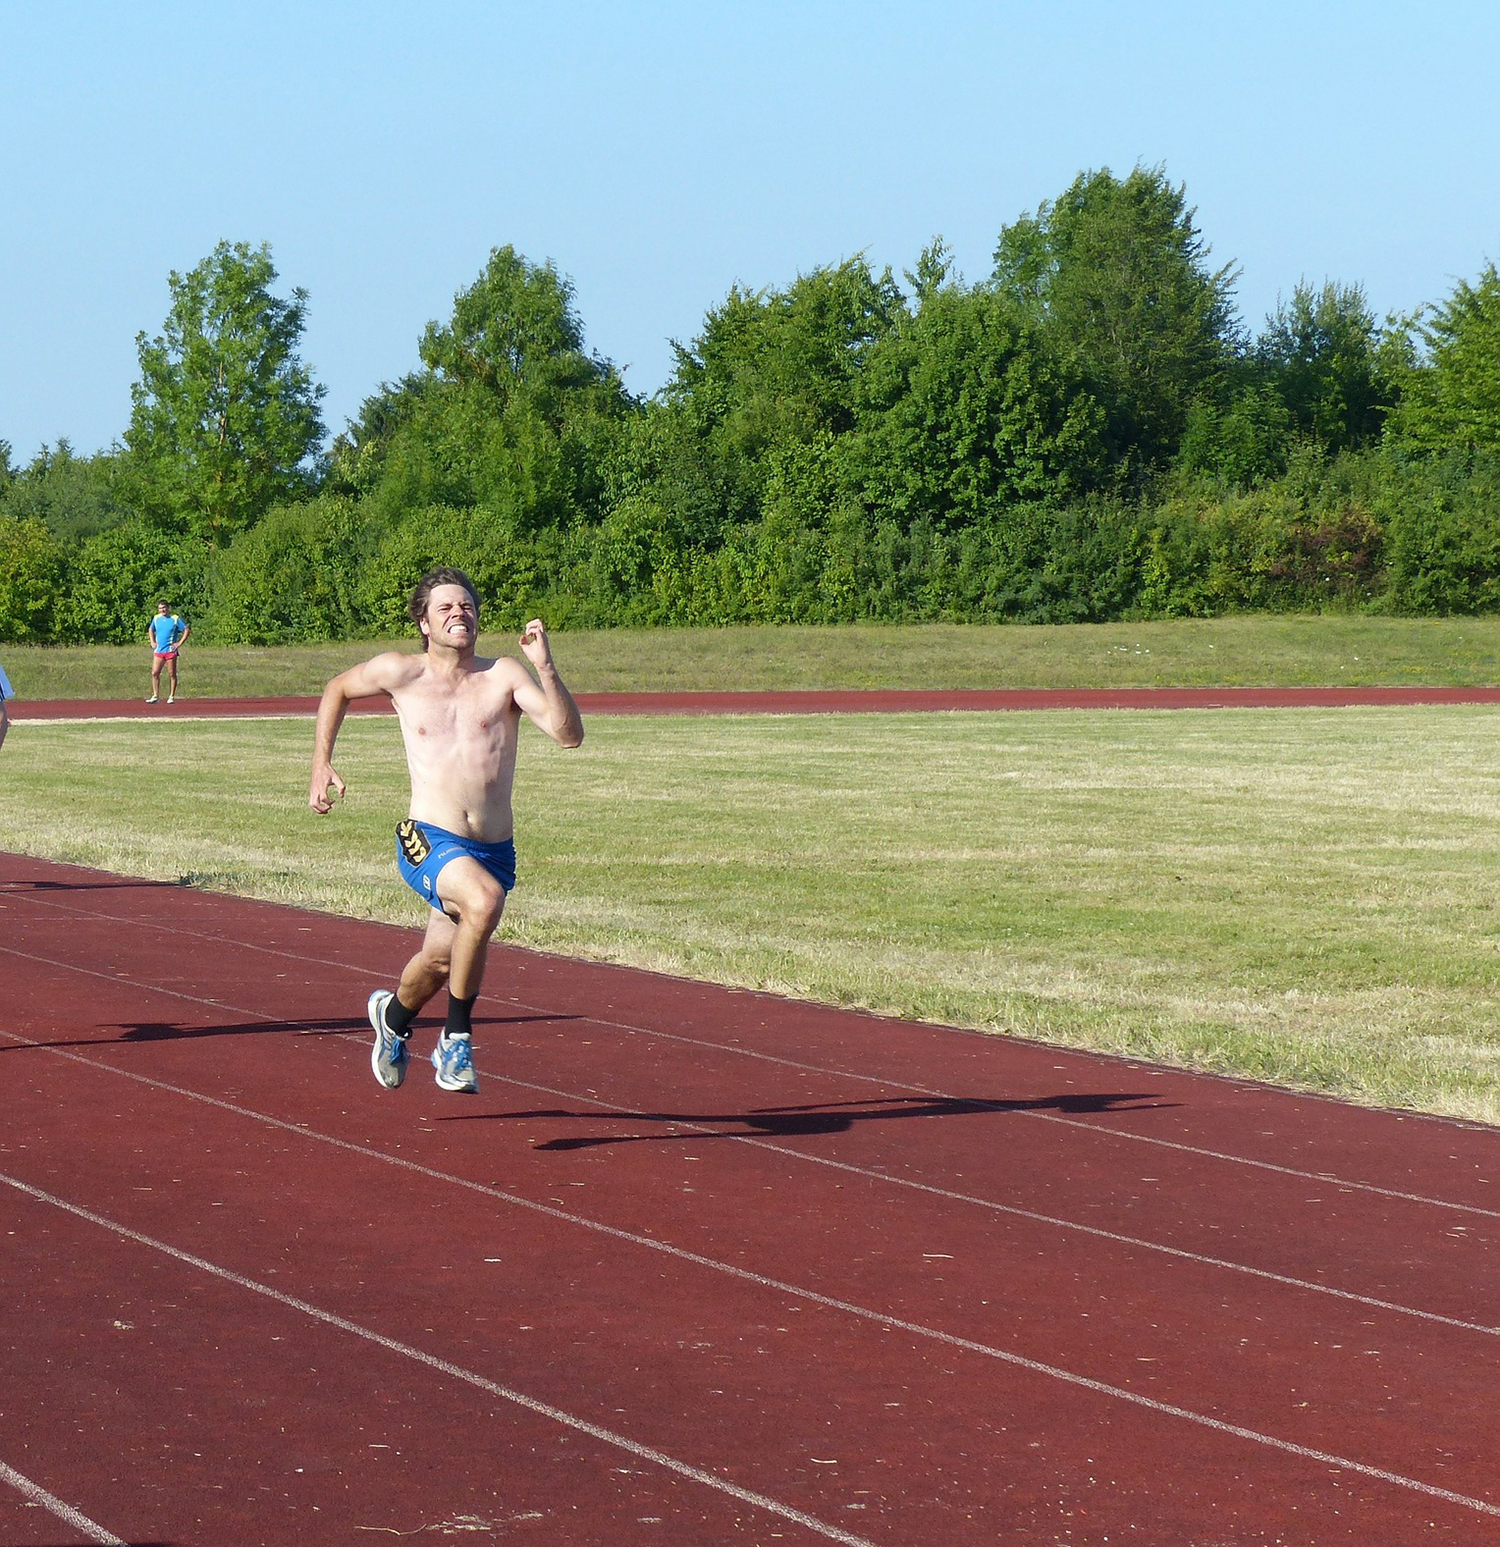 Fitness Man Sprinting on The Field Track